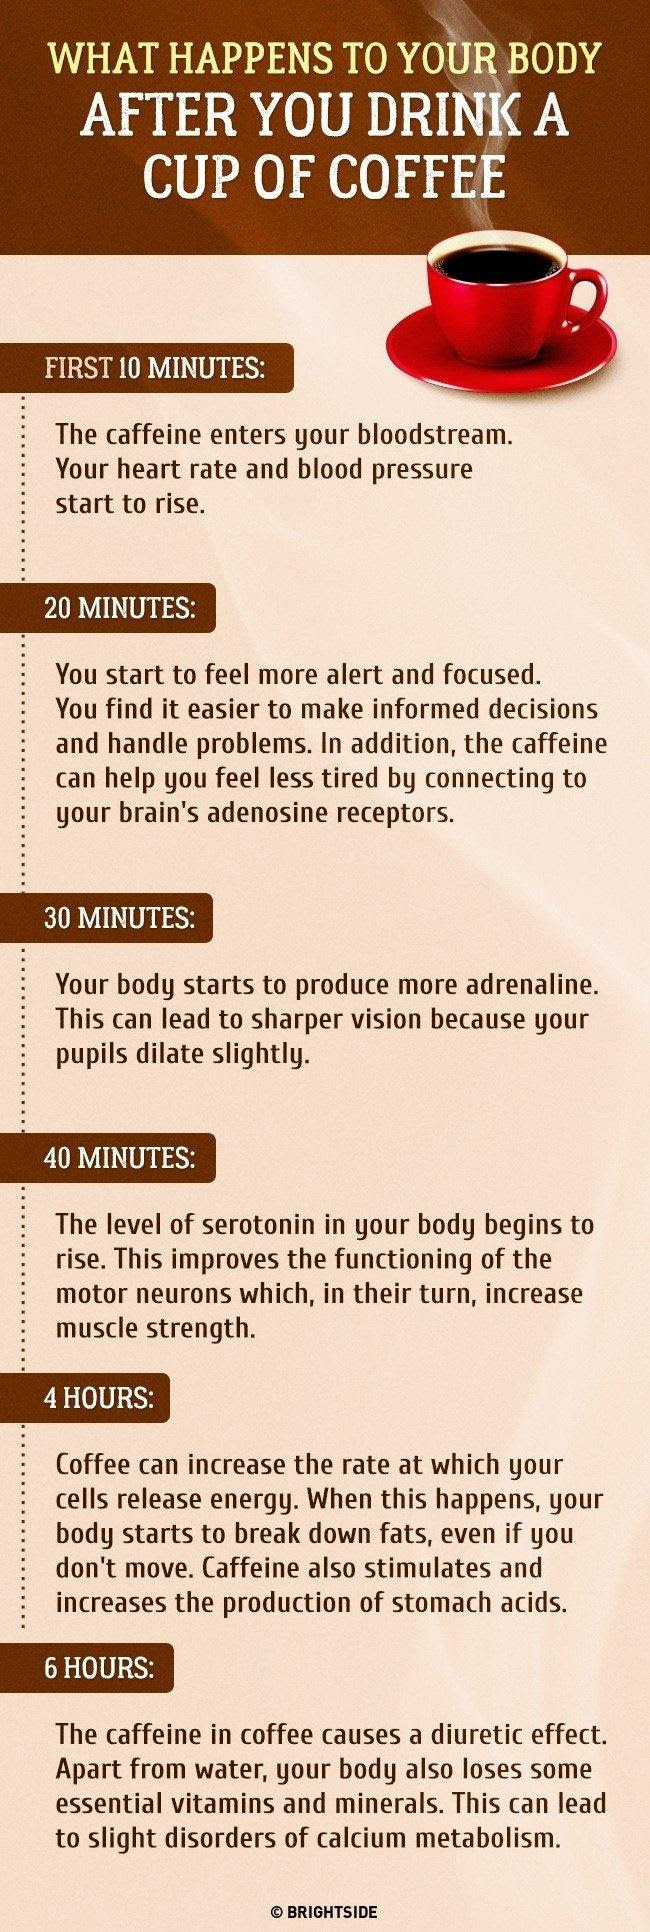 Full Guide What Happens to Your Body after a Cup of Coffee